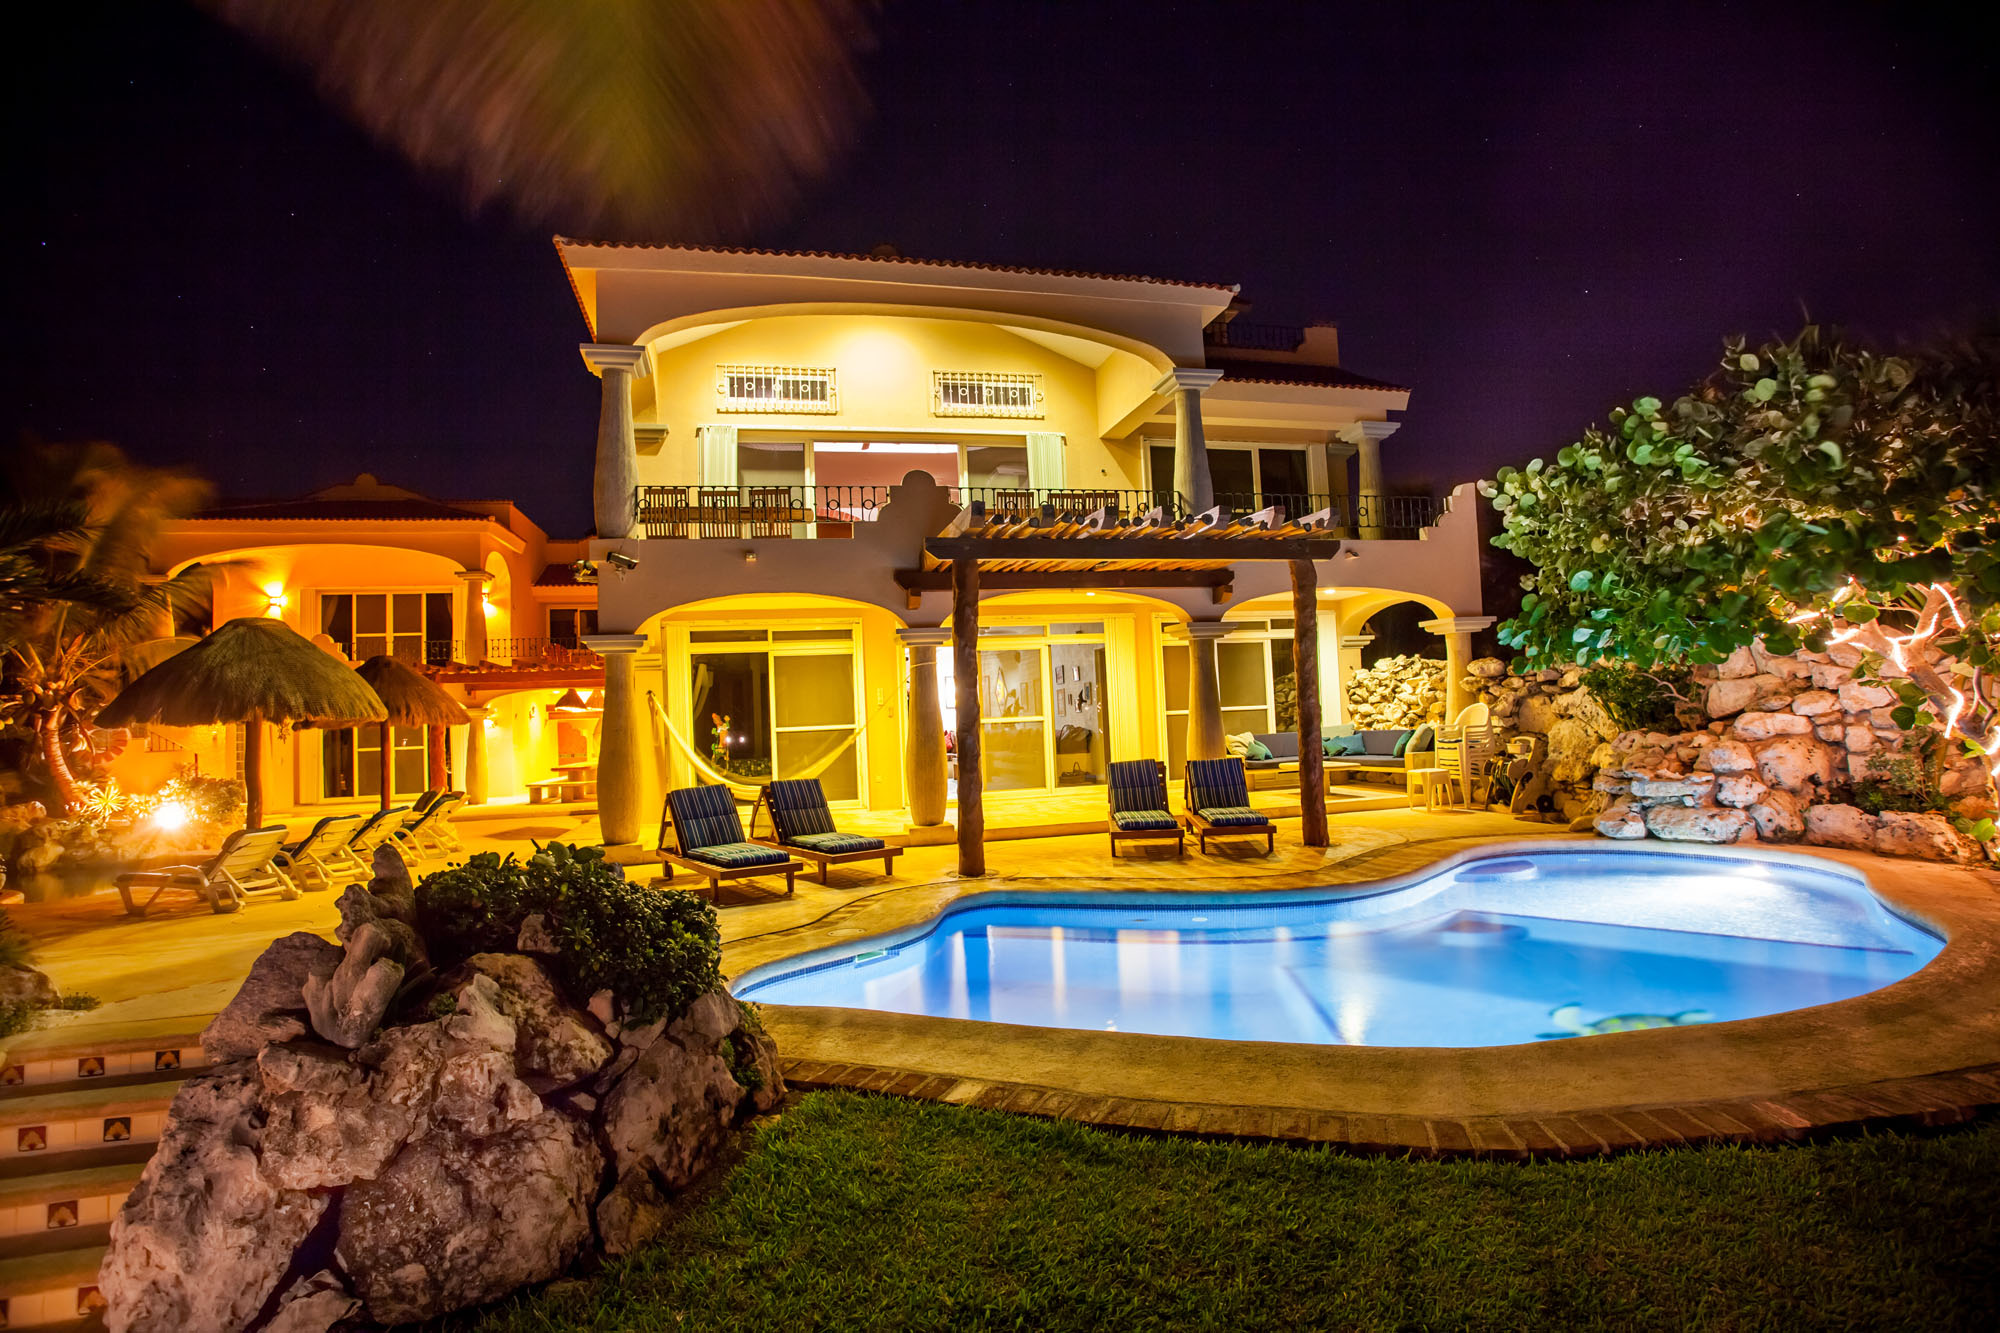 Luxuriously Casual Oceanfront home available in 5 - 9 bedroom configuration for groups of 10 - 20 people